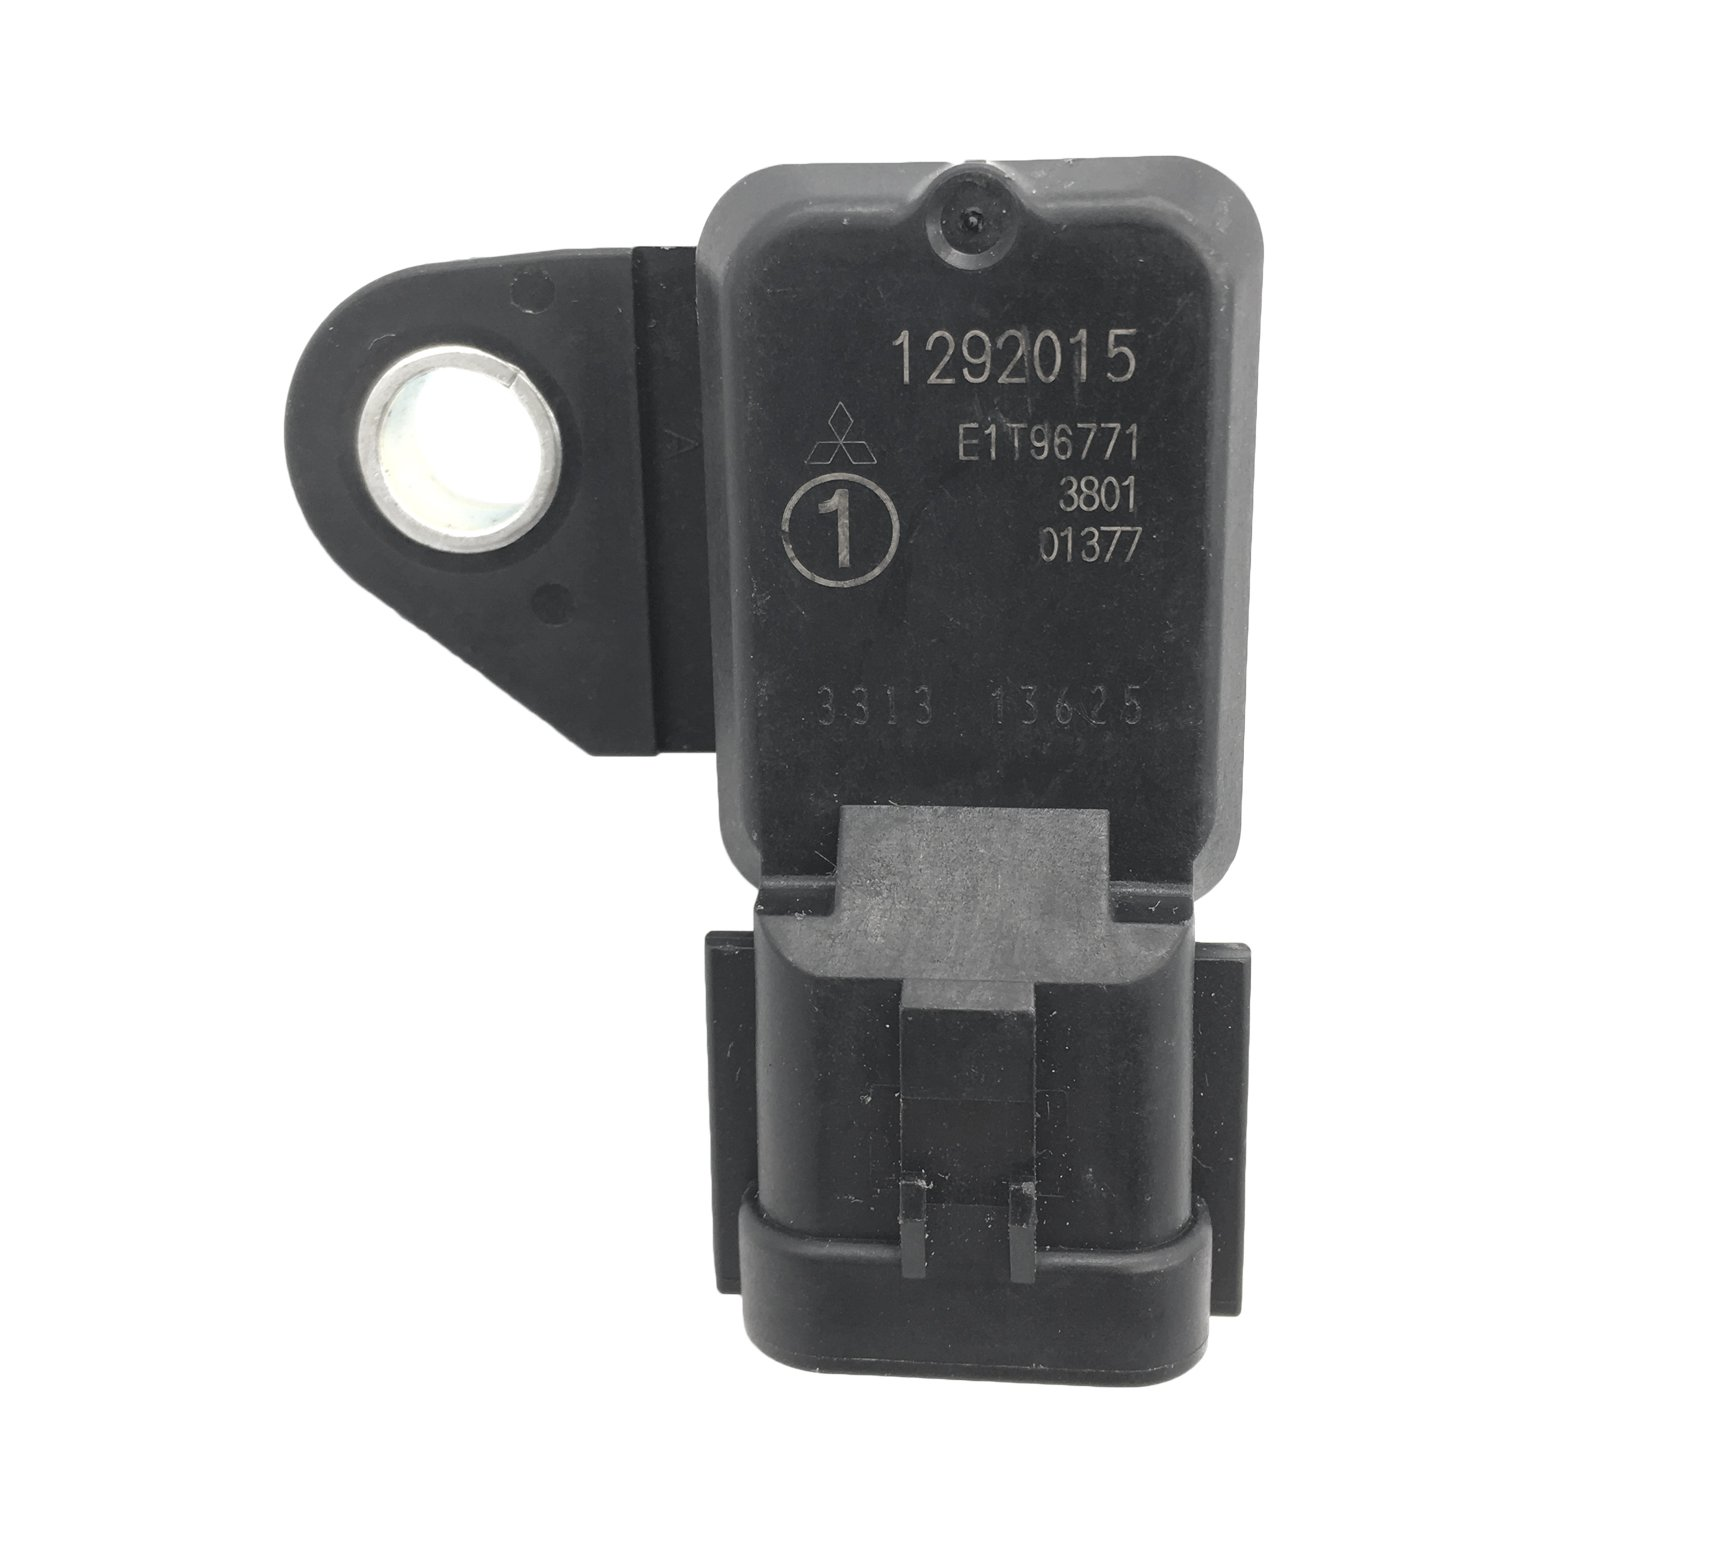 Pressure Sensor For Yamaha 2005 F250 TURD/TXRD 2006 &Later 200-350HP 6P2-82380-00-00 by Germban